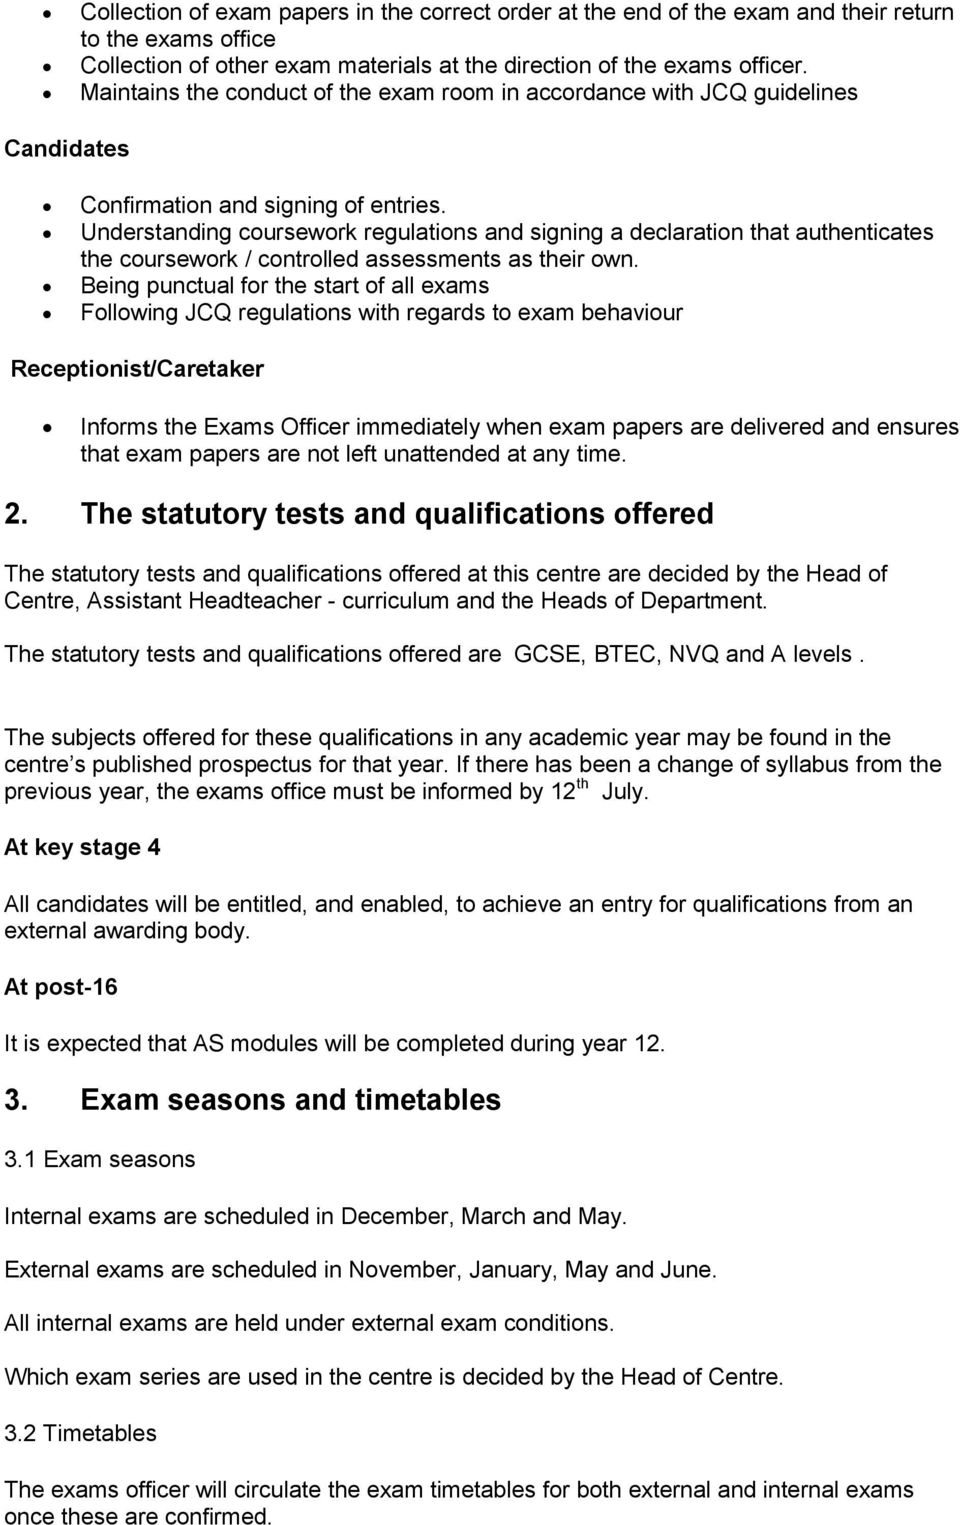 jcq coursework guidance